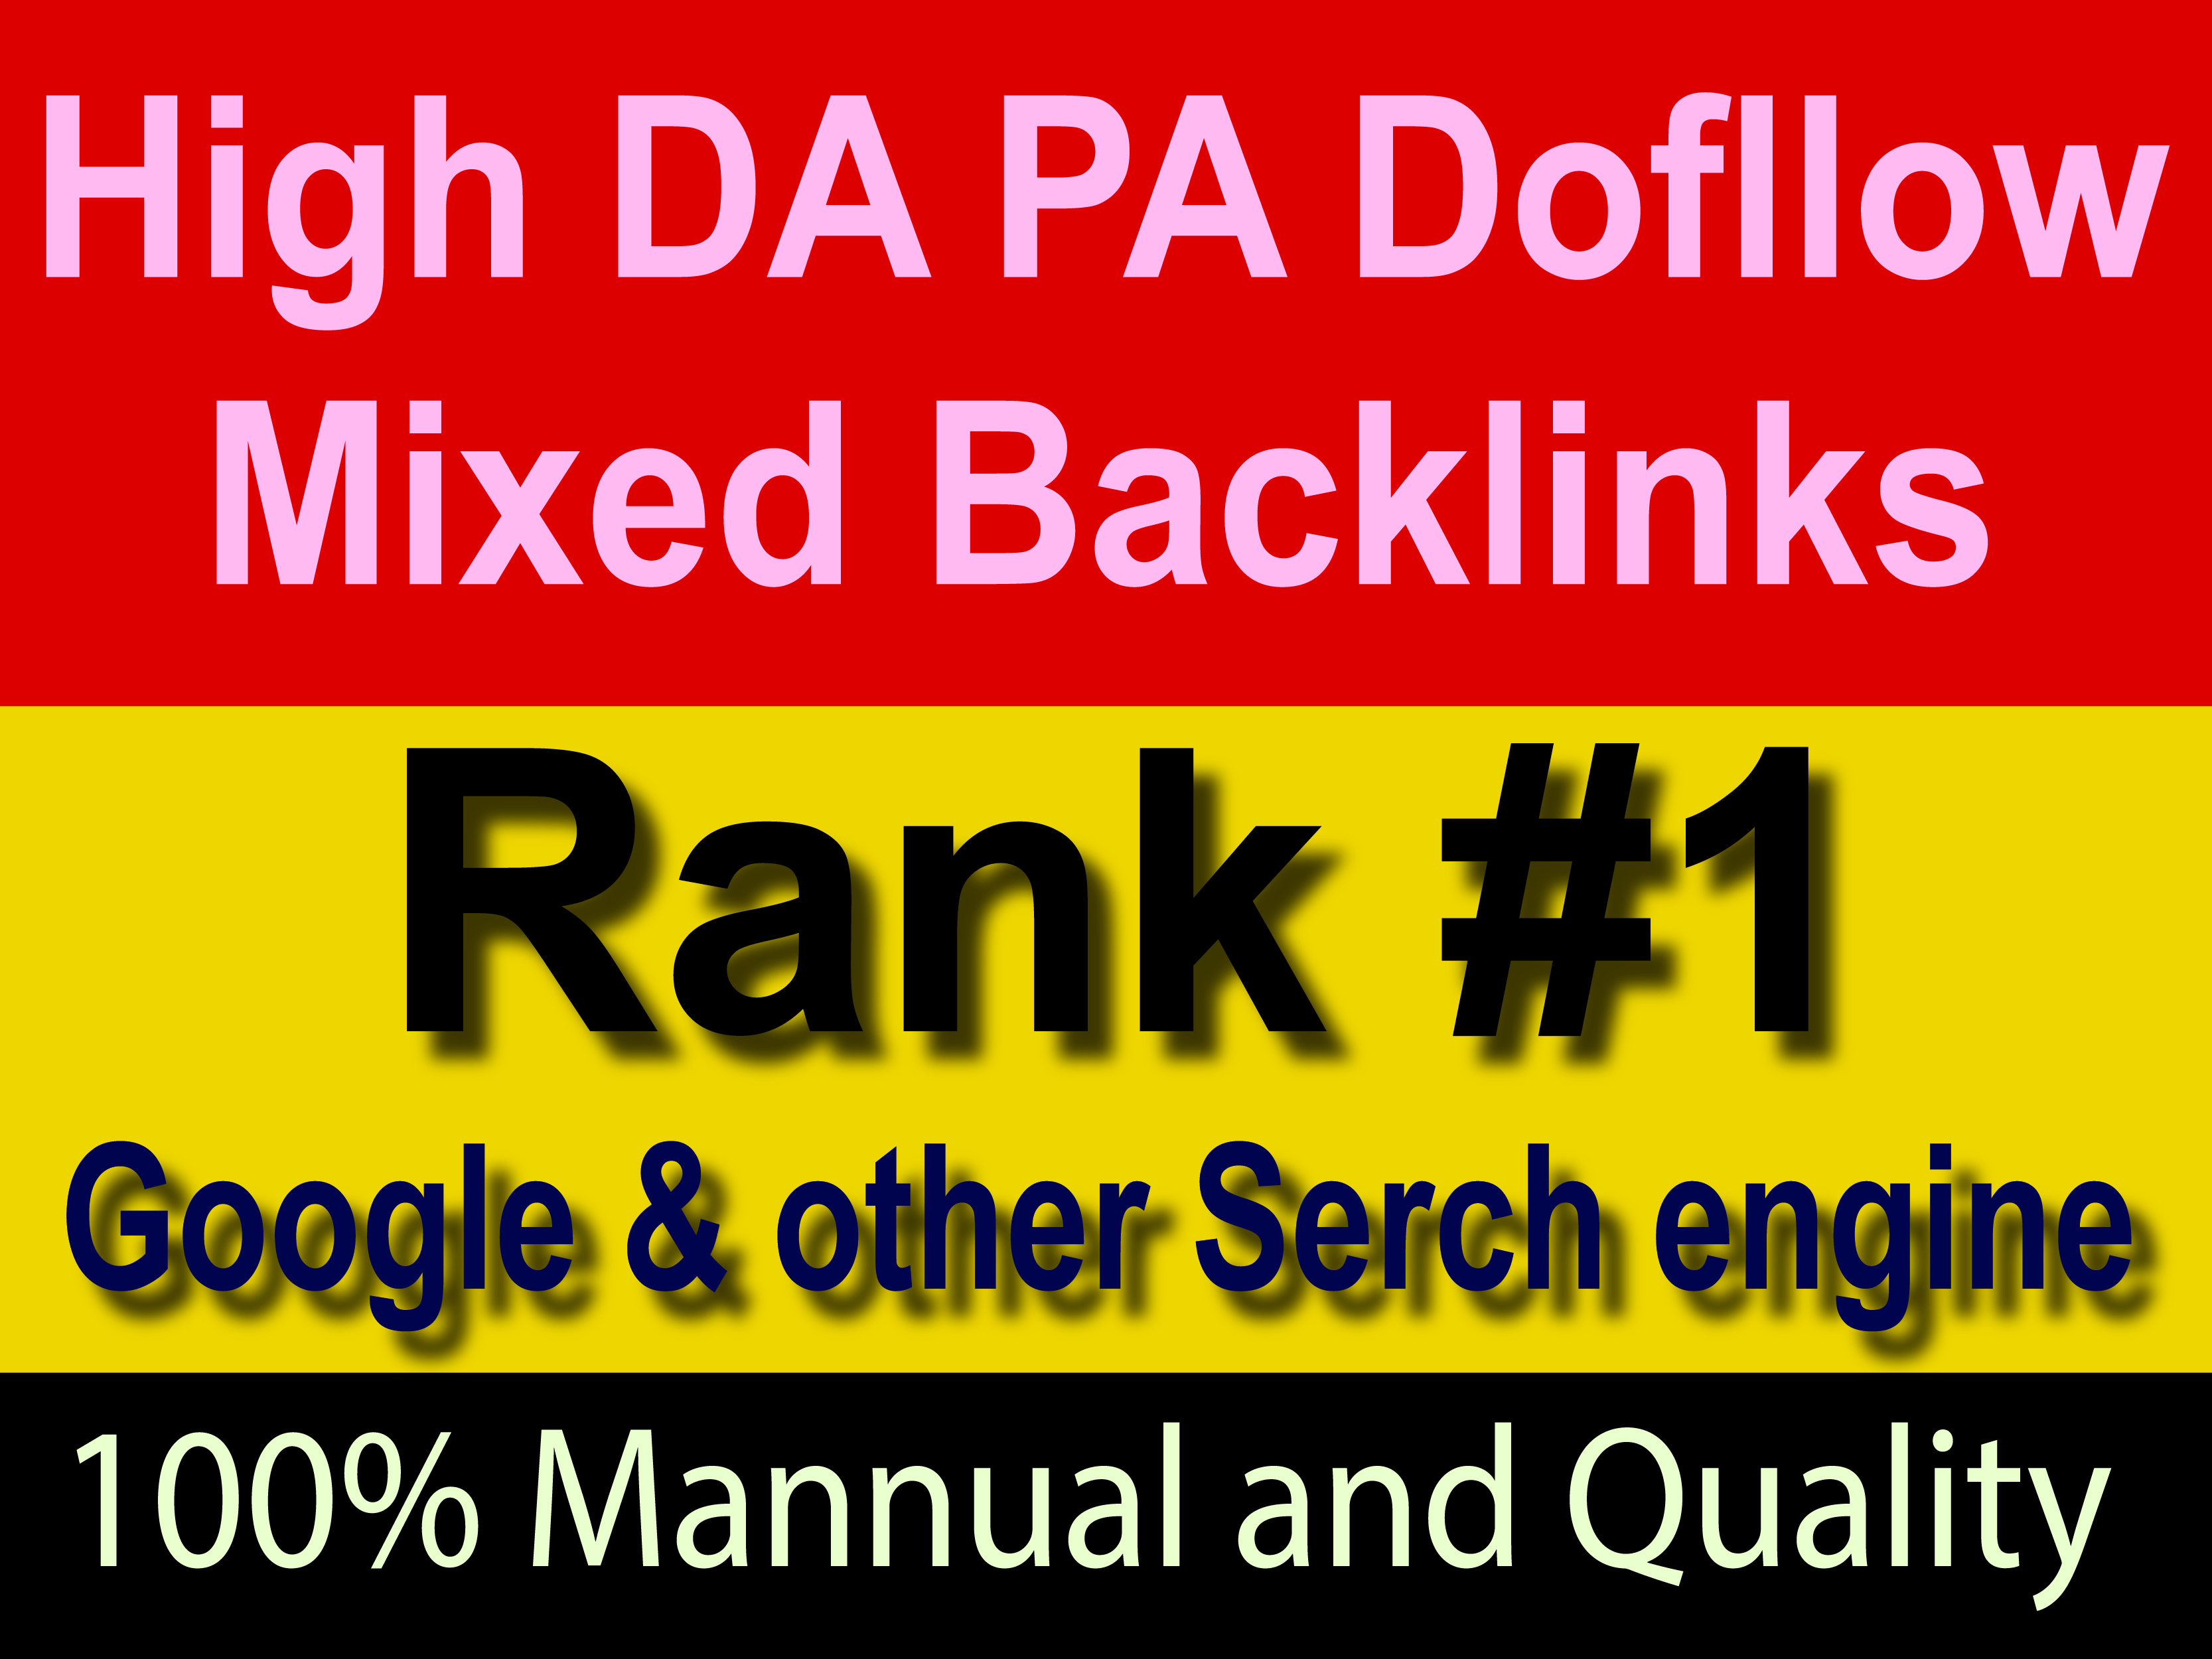 High Quality DA 60 Permanents Mixed Backlinks with rank & boost your website early grow.